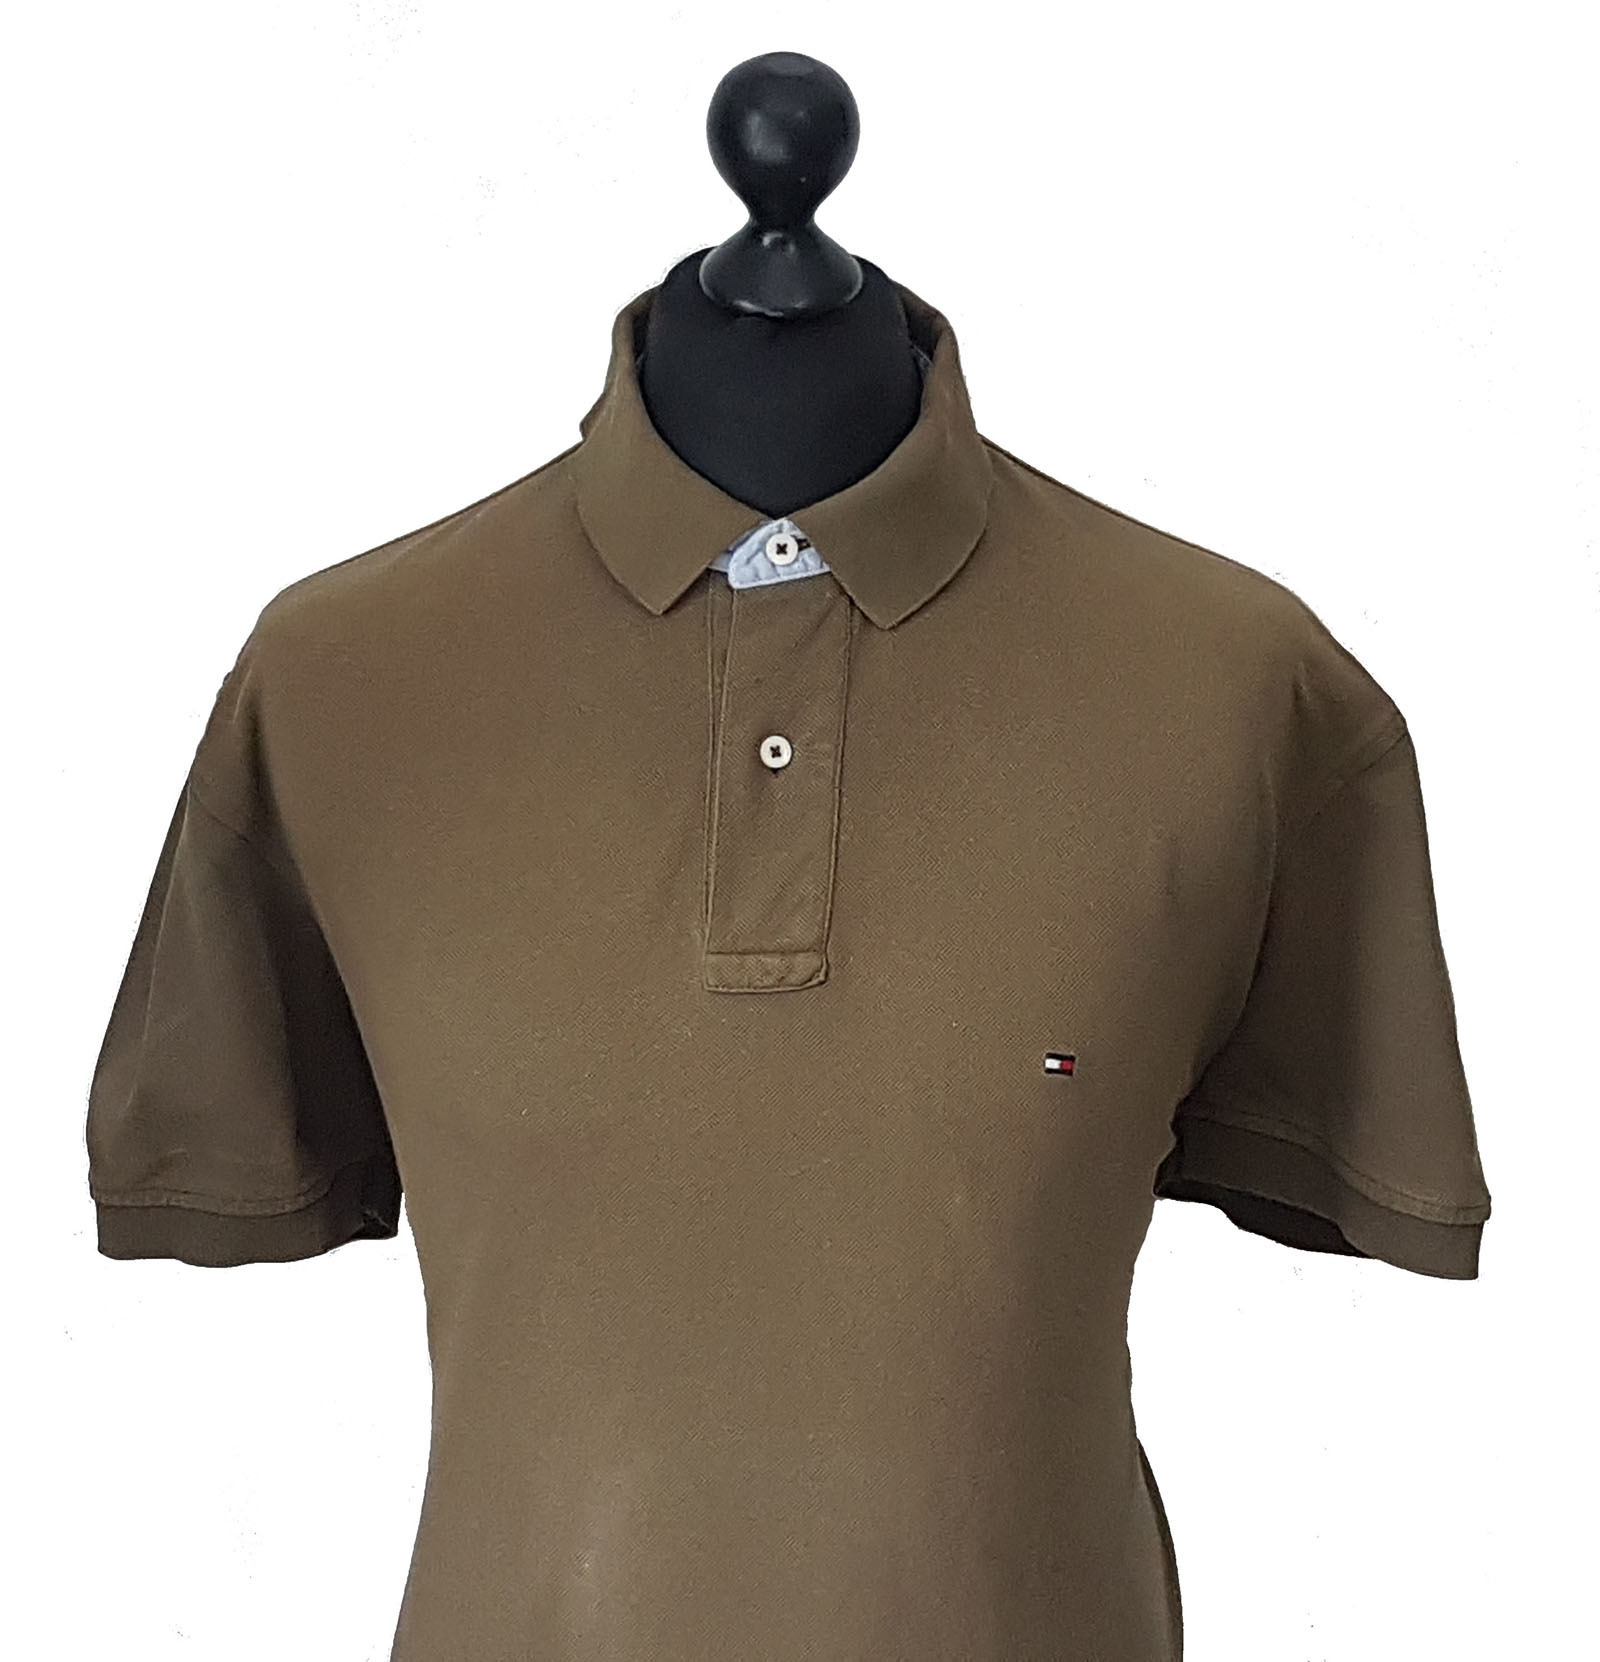 Tommy hilfiger men 39 s vintage olive polo shirt size xl xxl for Xxl mens polo shirts